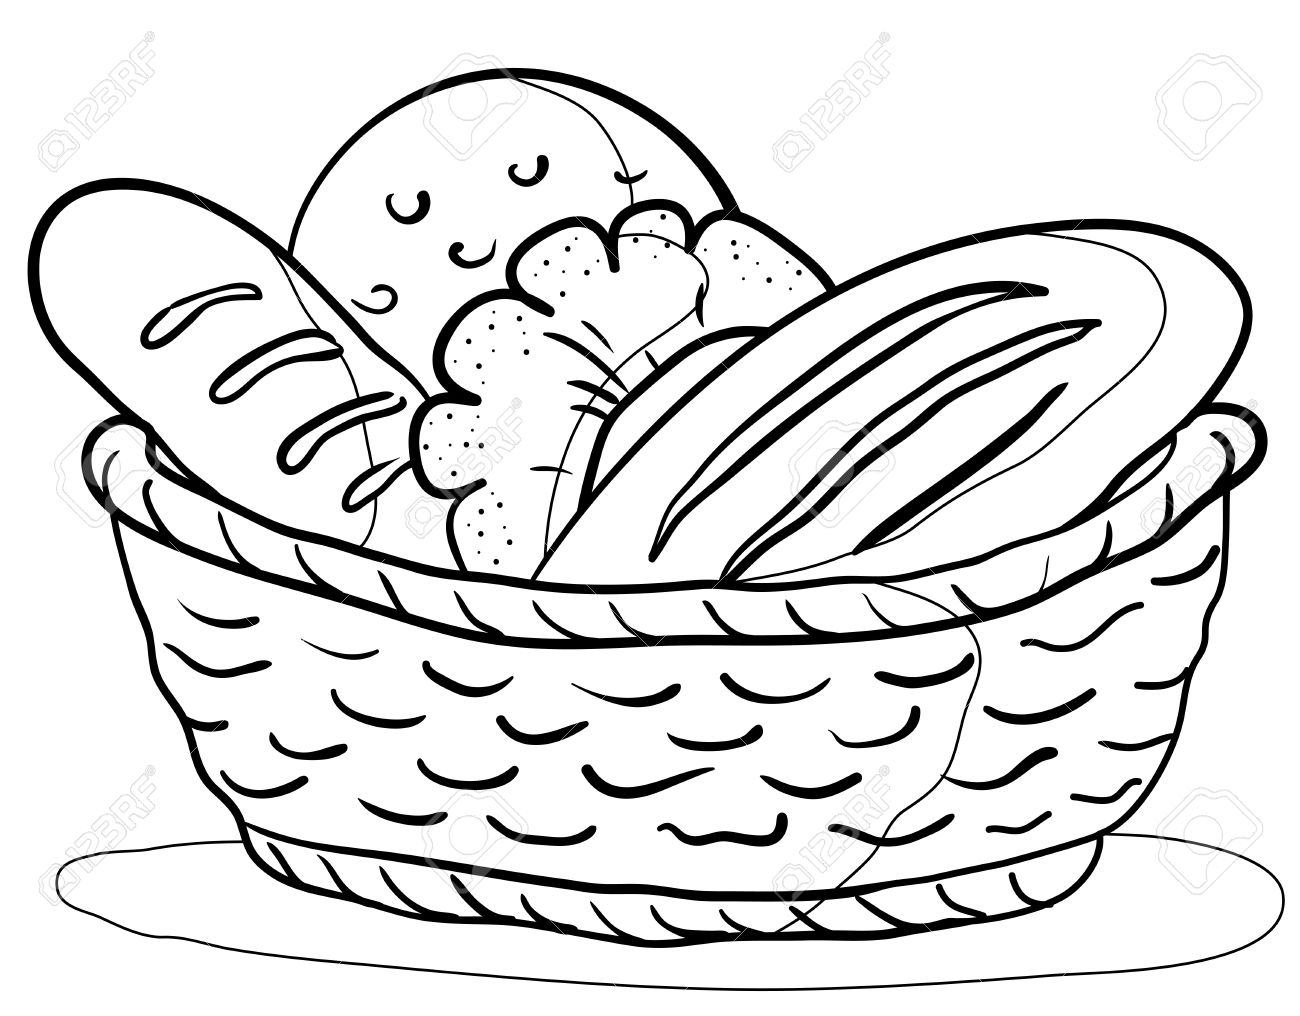 1300x1016 Food Tasty Fresh Bread, Loafs And Rolls In A Basket, Contour